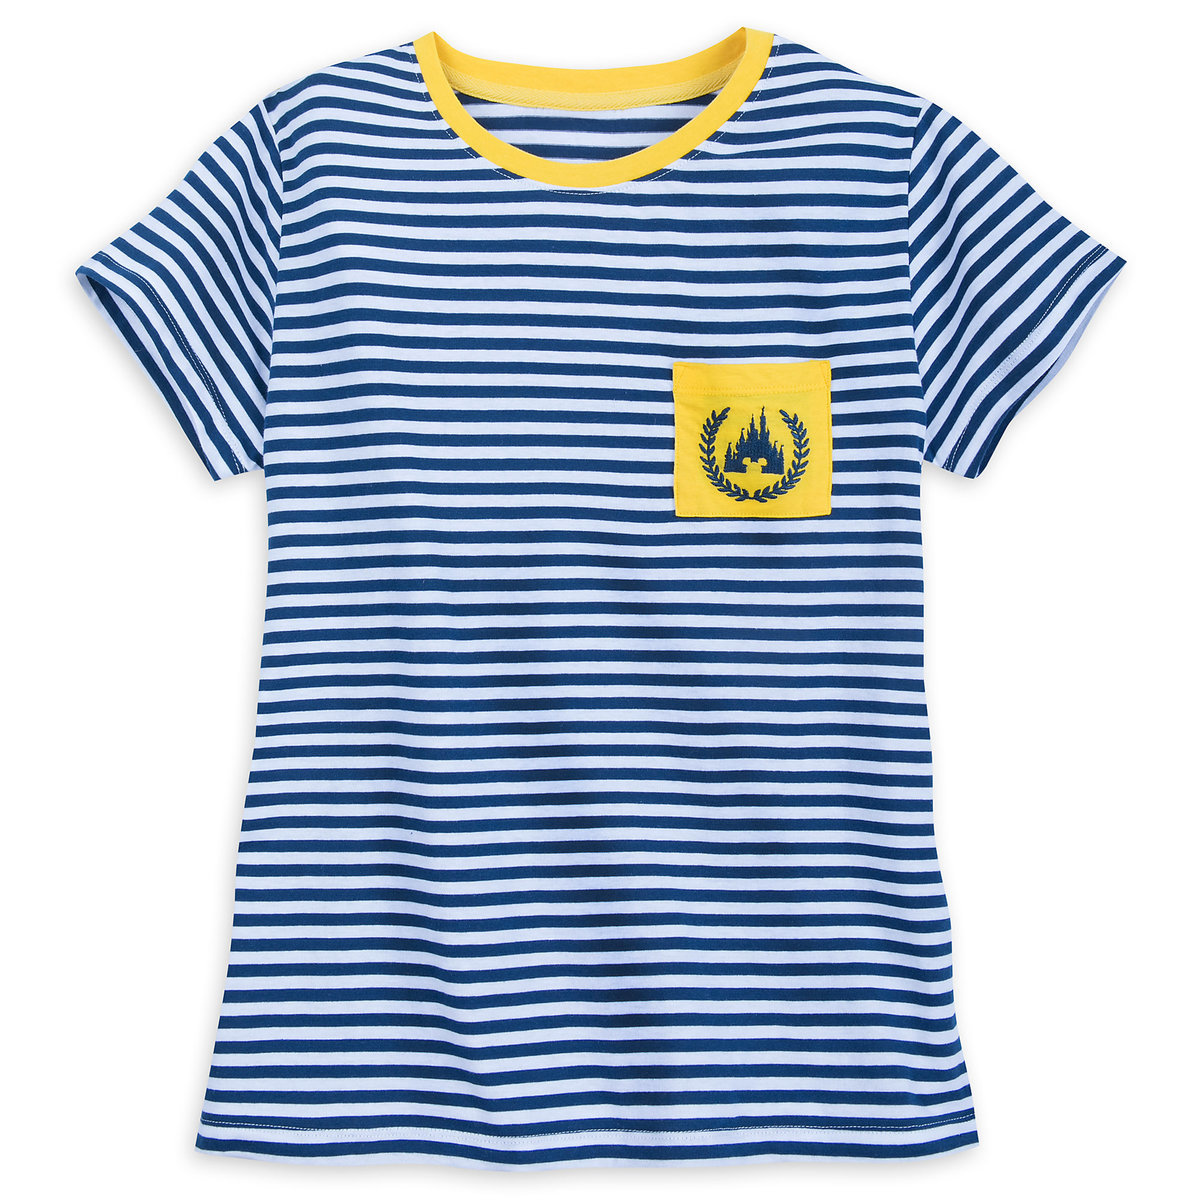 64dac5c8 Product Image of Fantasyland Castle Striped T-Shirt for Women # 1